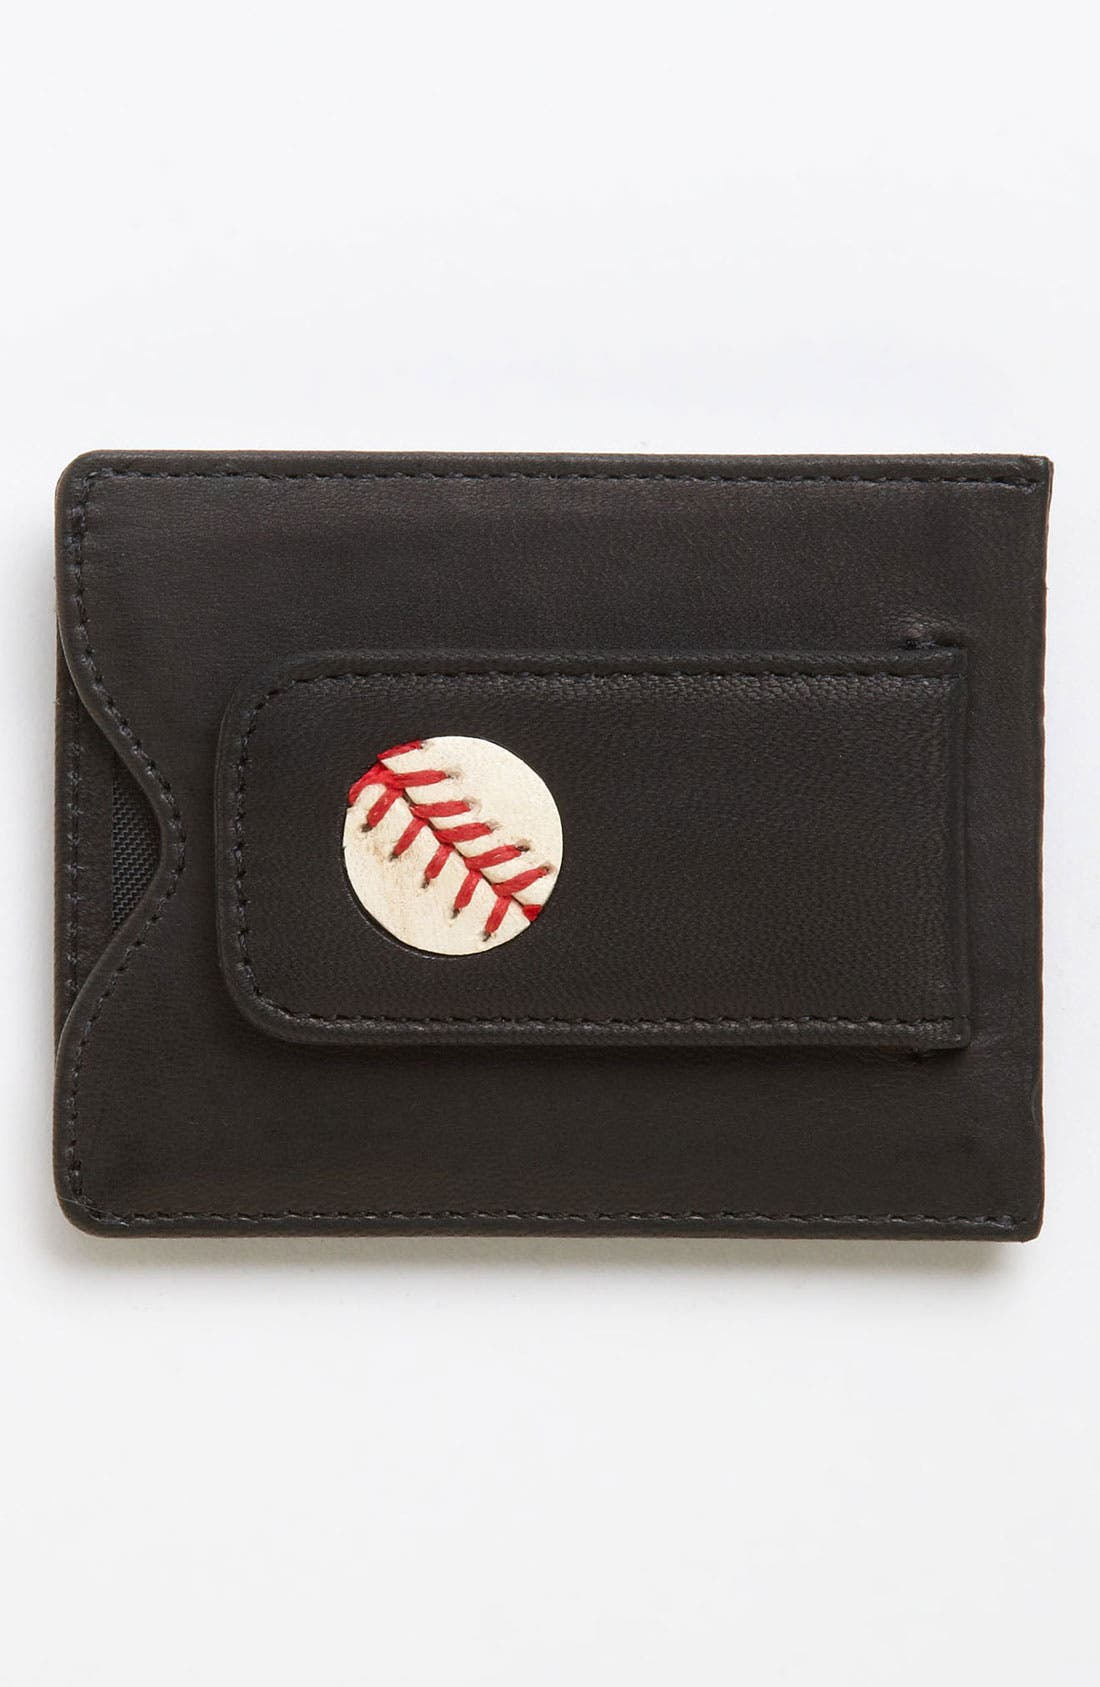 Alternate Image 1 Selected - Tokens & Icons 'Texas Rangers' MLB™ Game-Played-Baseball Card Case